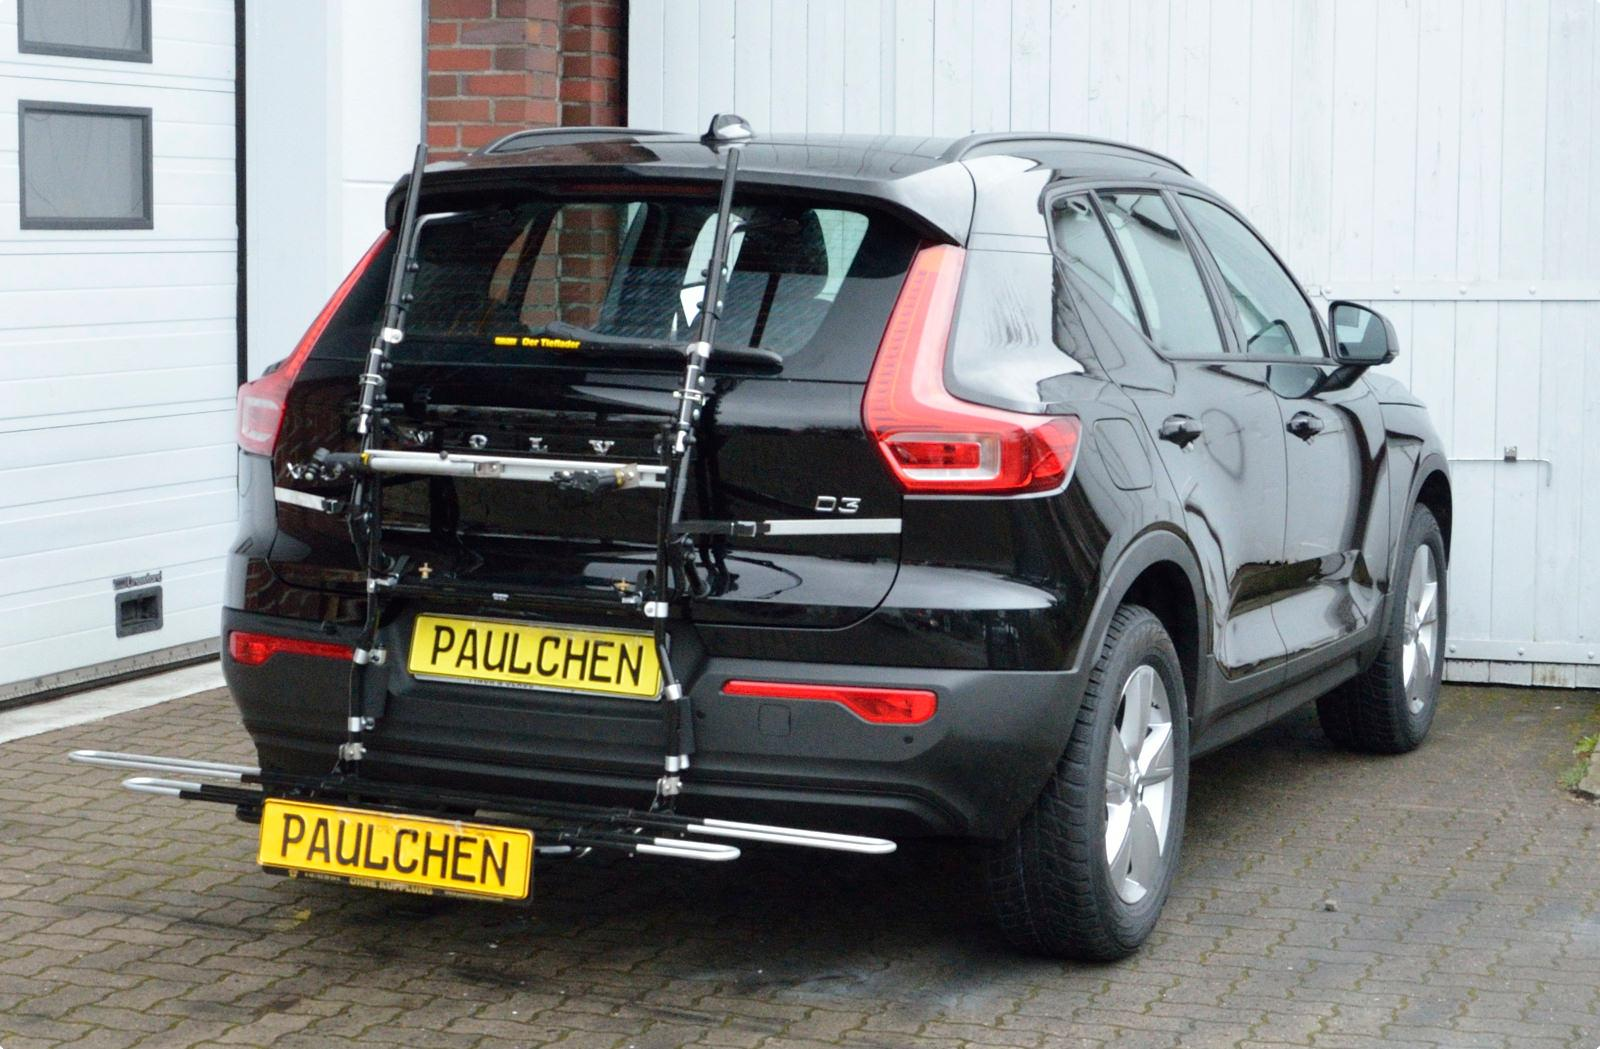 Bicycle carrier for Volvo XC40 (536) - Paulchen Heckträger System